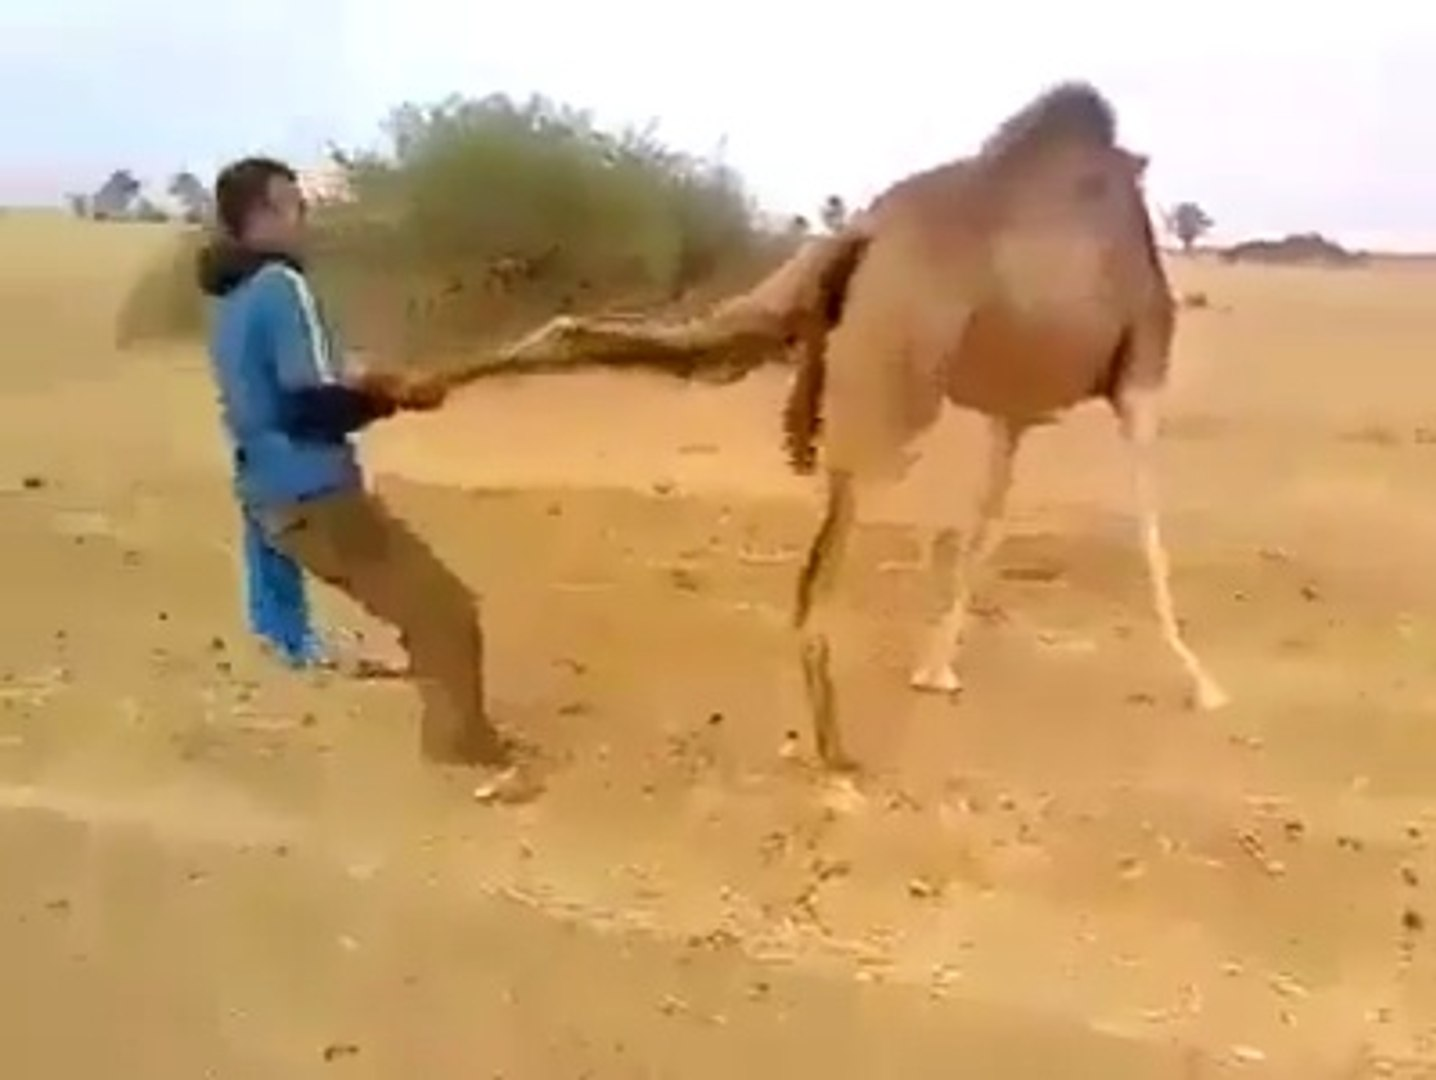 funny watch how man caught the camel in saudi Arab